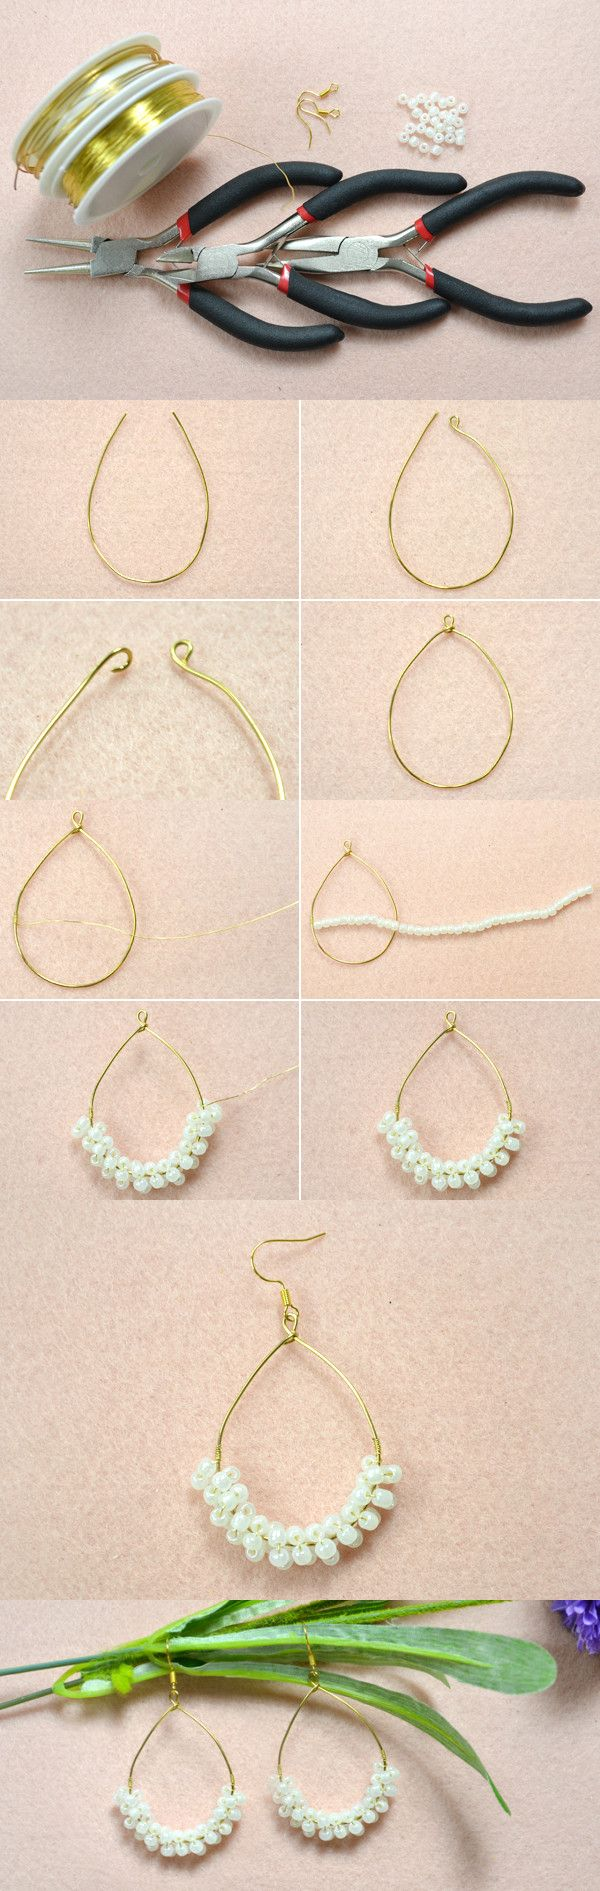 94 best DIY Jewelry images on Pinterest | Jewelry, Earrings and ...